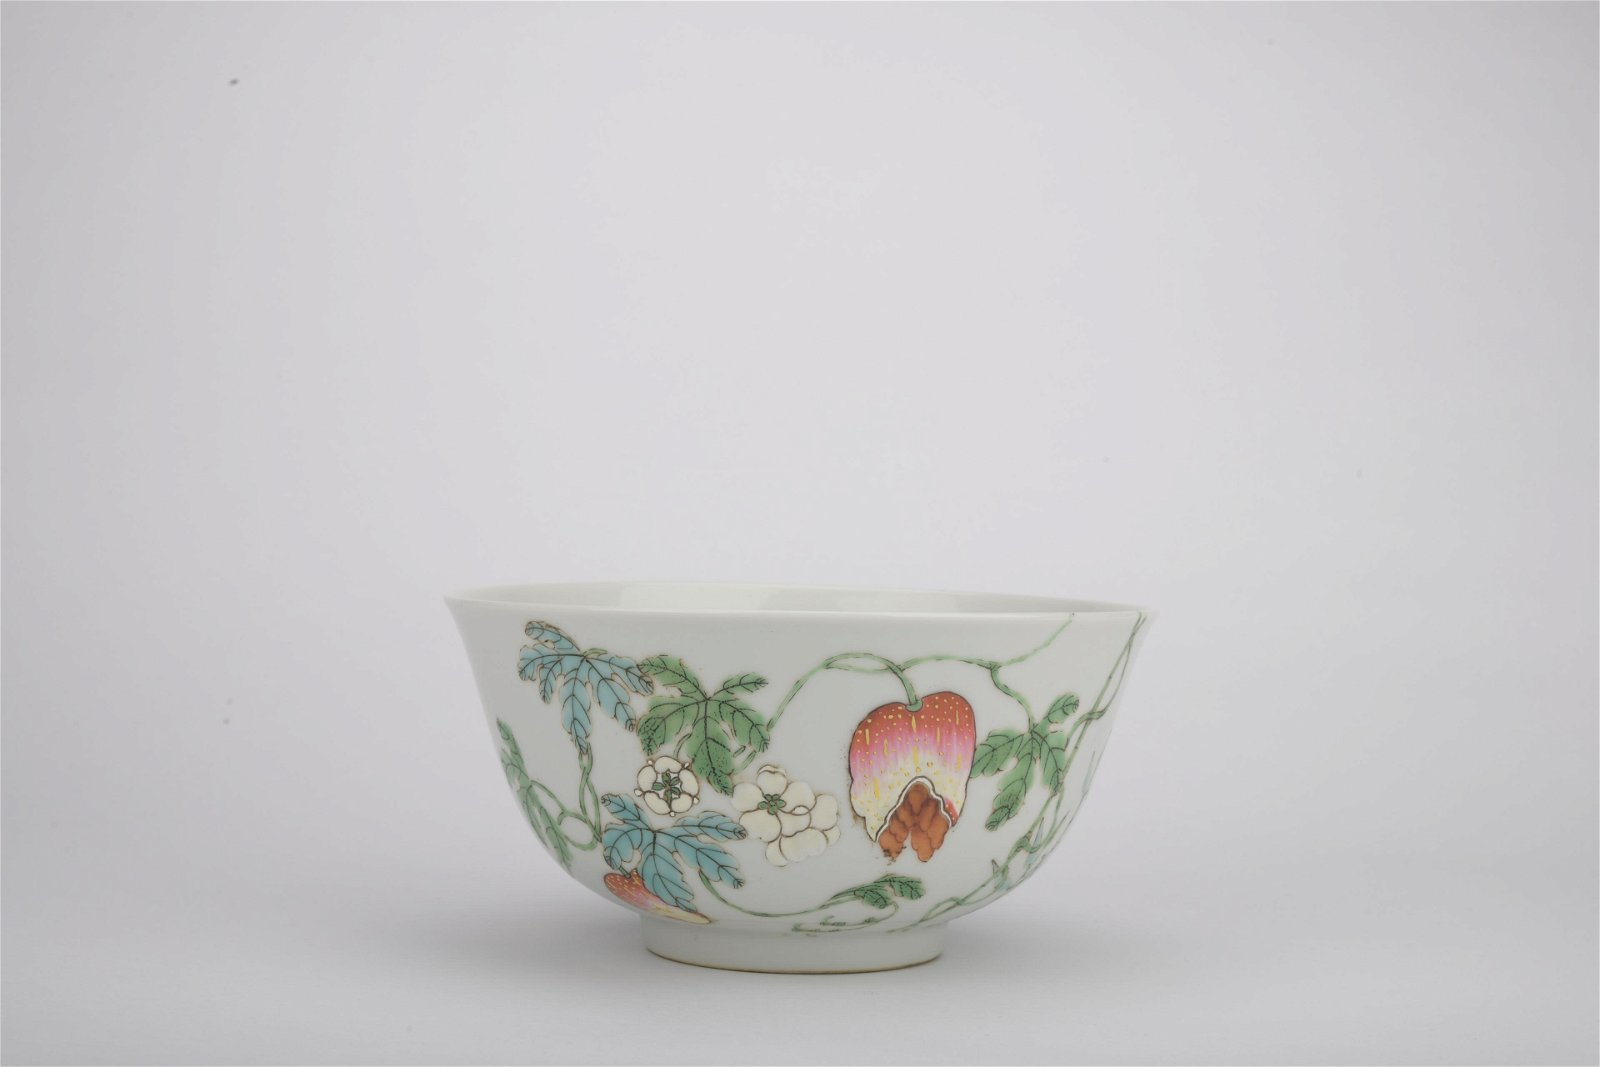 Qing dynasty Guangxu period famille rose bowl with